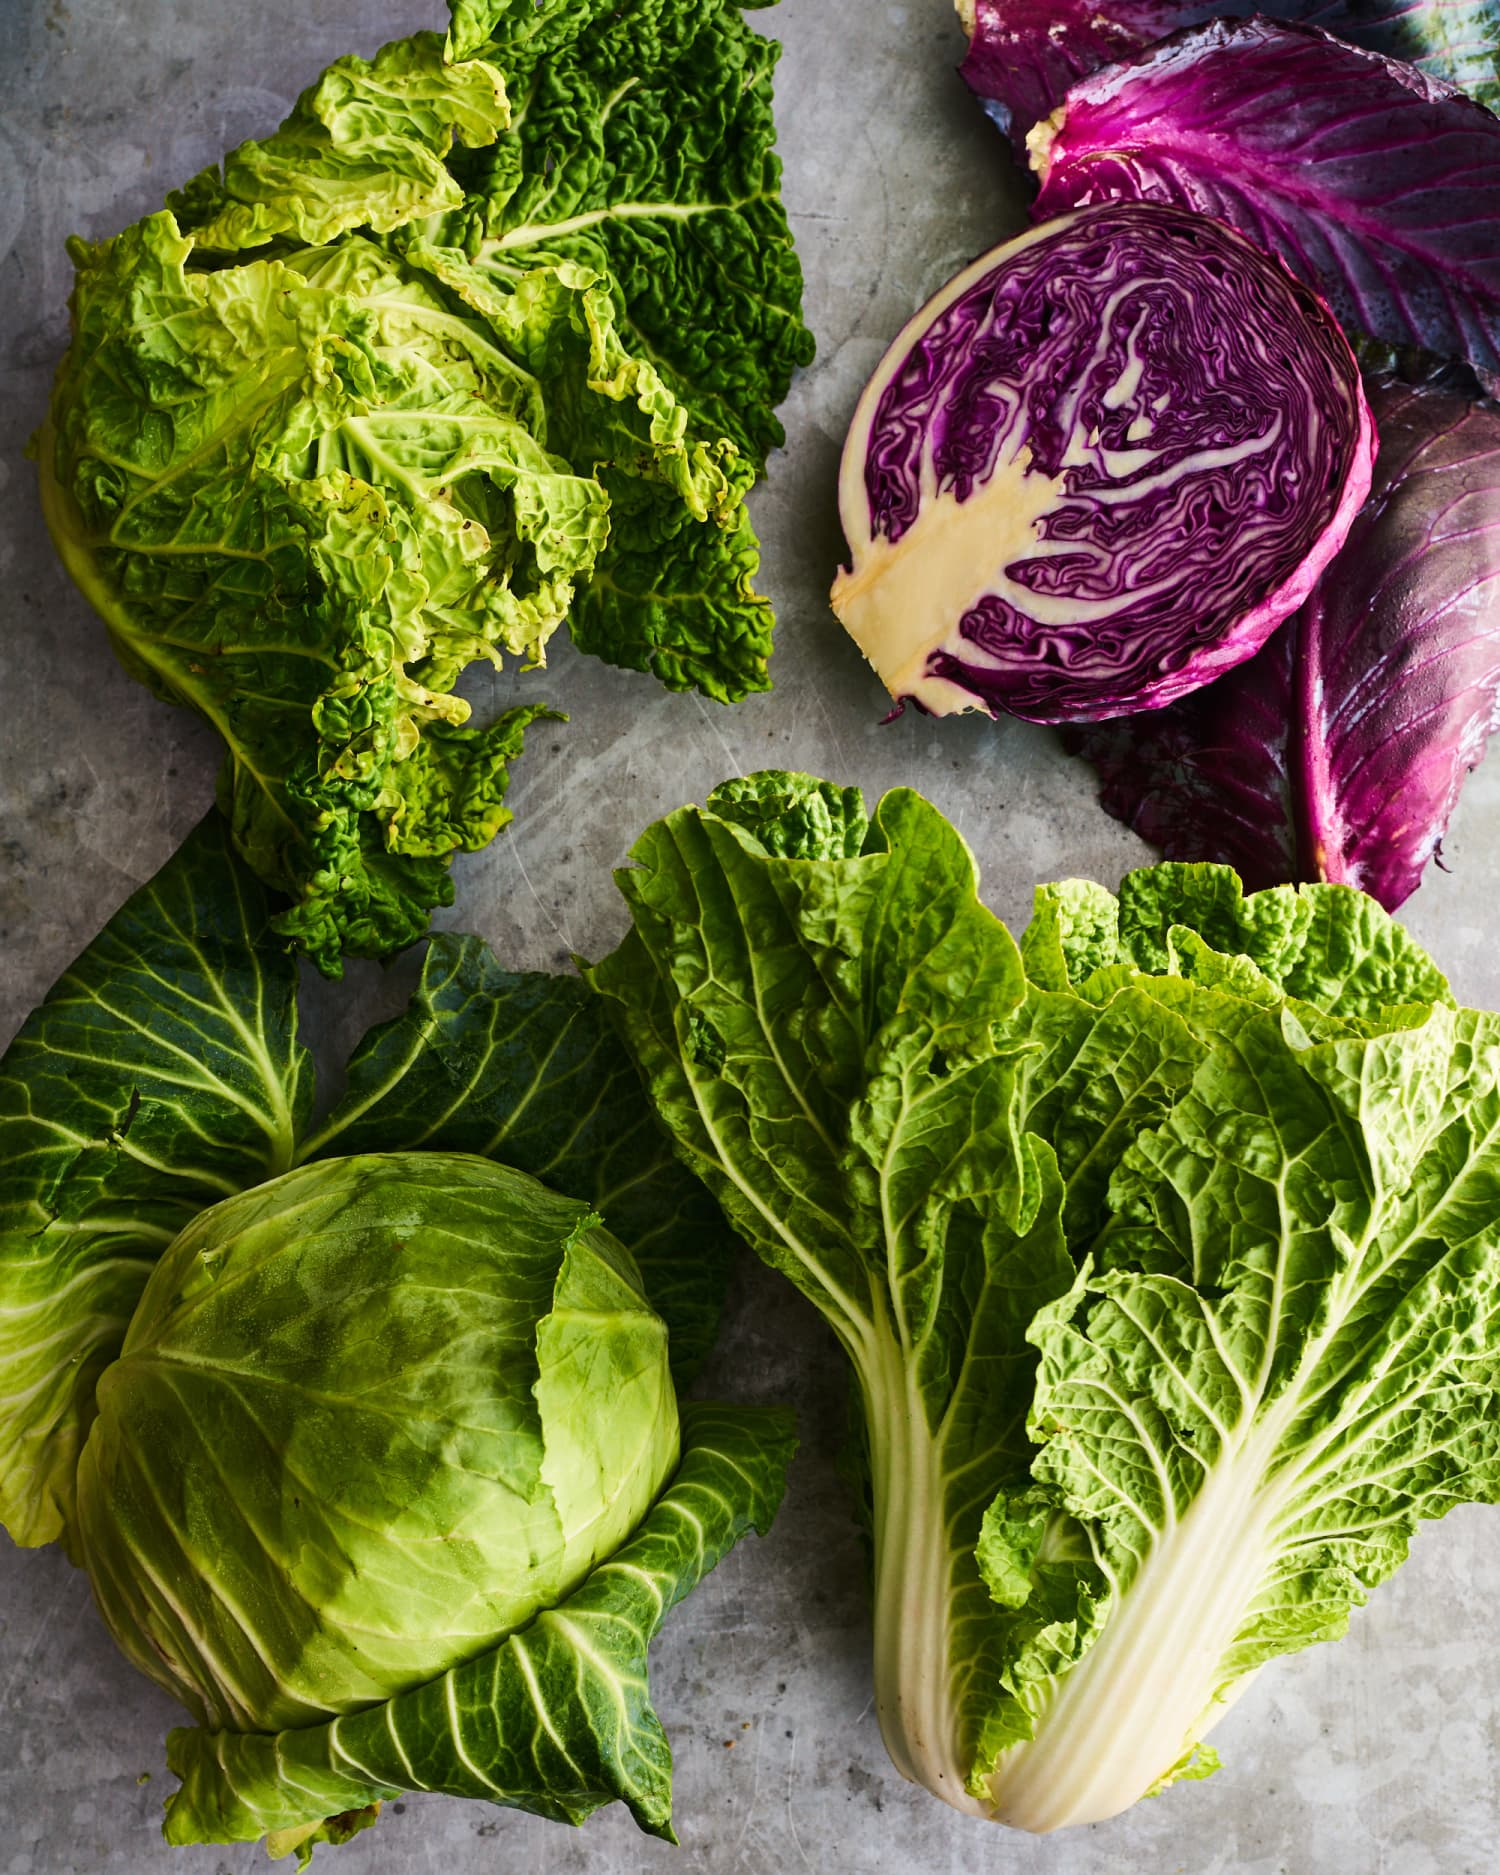 Cabbage: The Best Ways to Store It, Shred It, Cook It, and Eat It